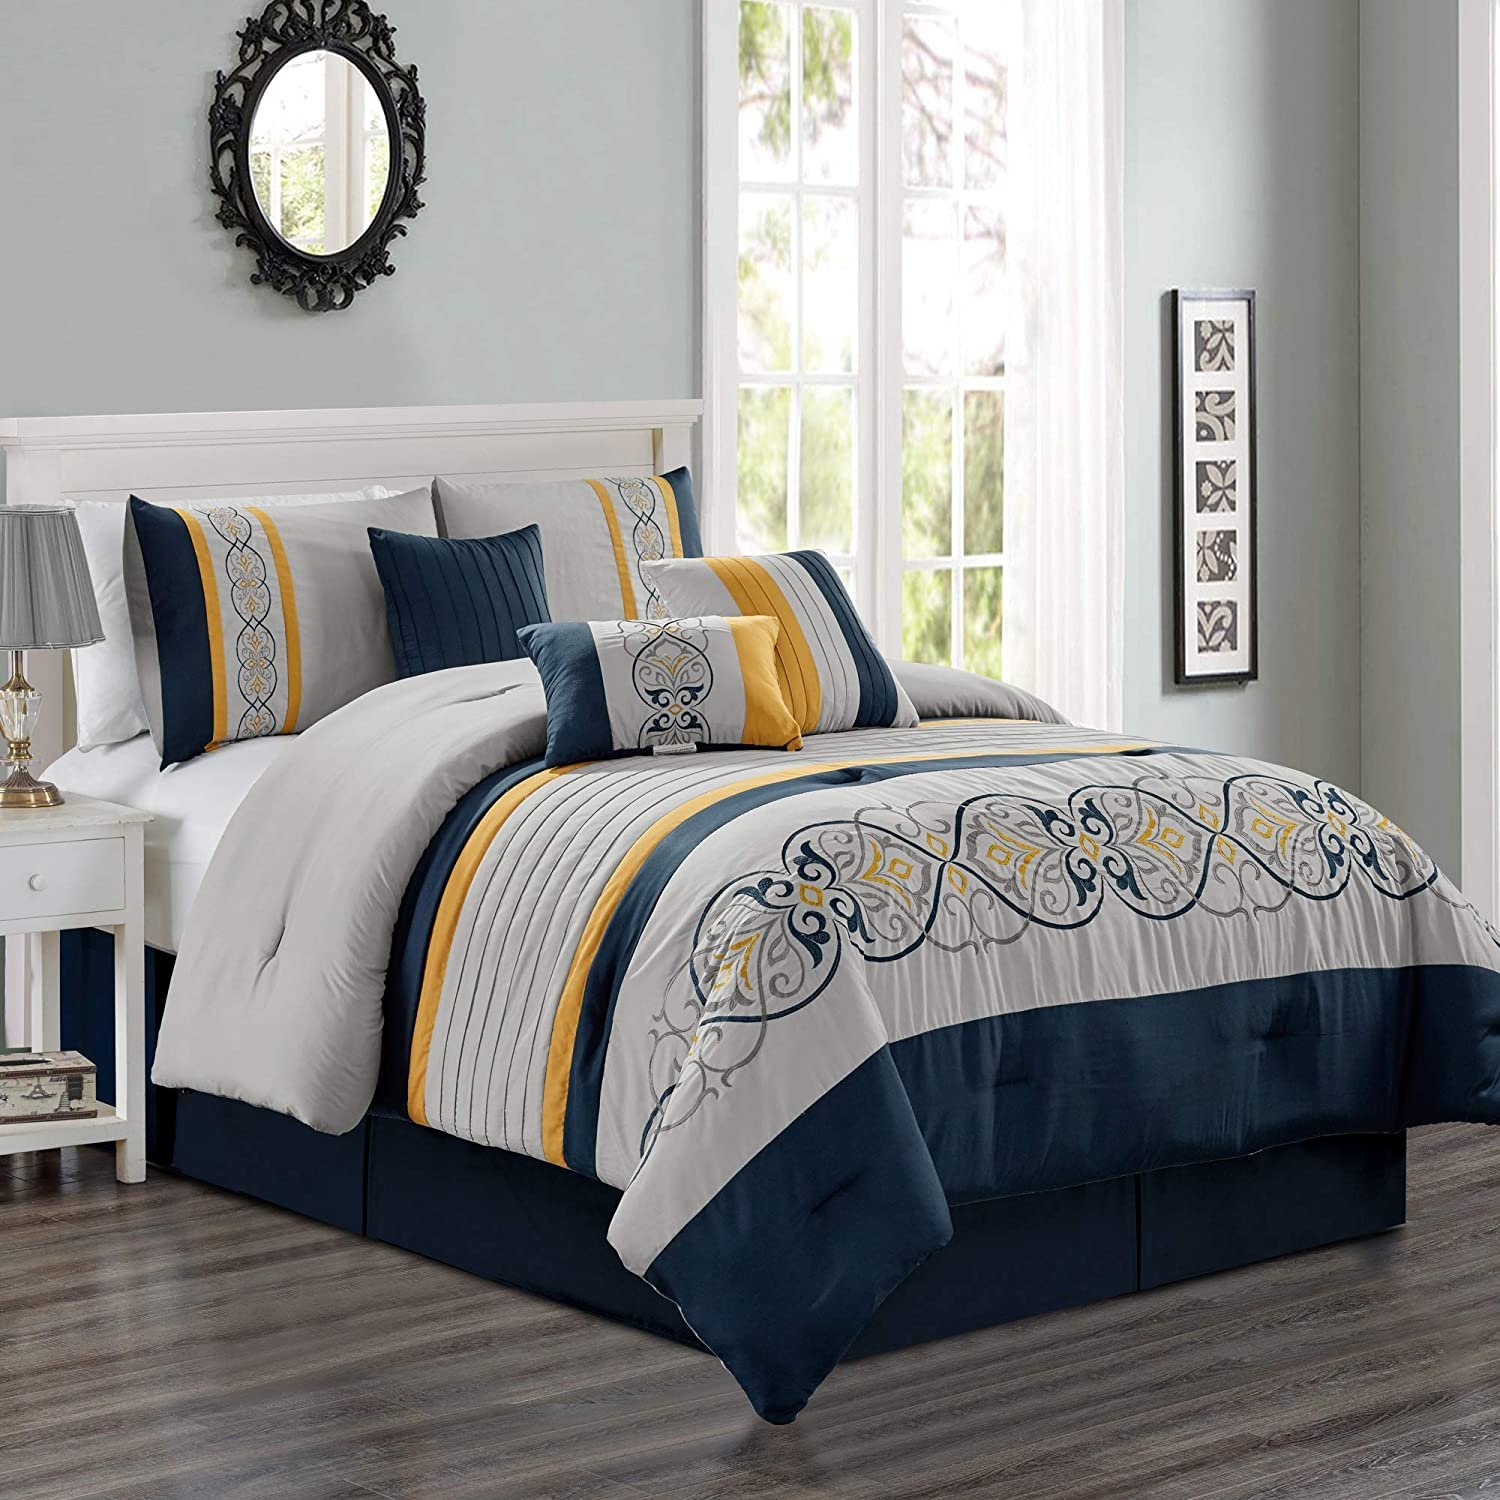 Sapphire Home Luxury 7 Piece California King Comforter Set With Shams Bed Skirt Cushions Gray Navy Blue Yellow Elegant Stripe Damask Pattern Bed Cover Bed In A Bag 21670 Cal King Walmart Com Walmart Com